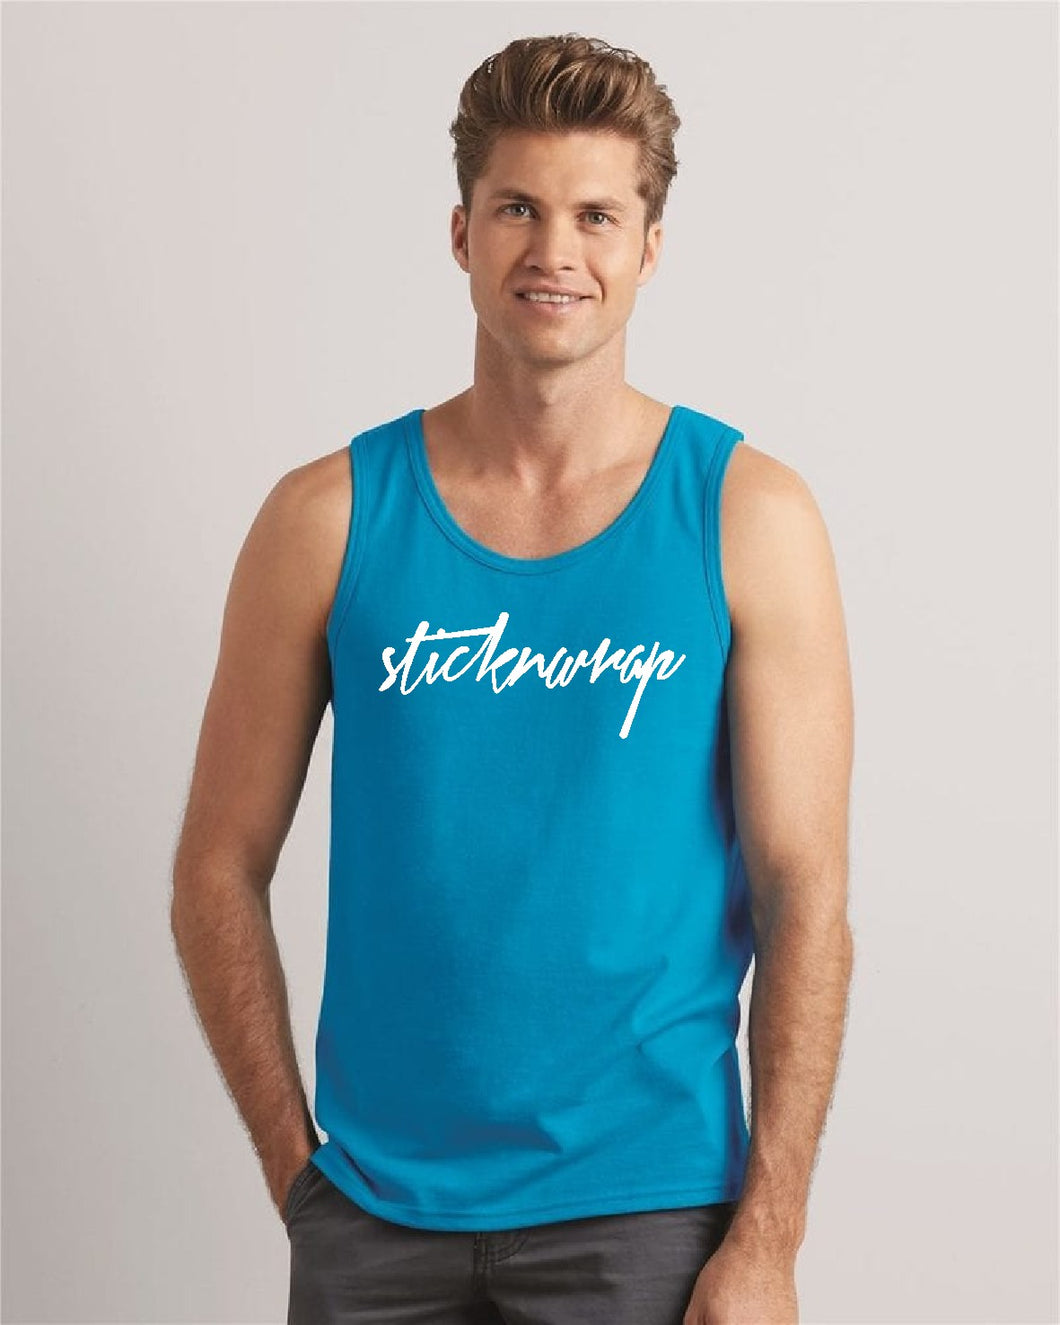 Sticknwrap Tank Top